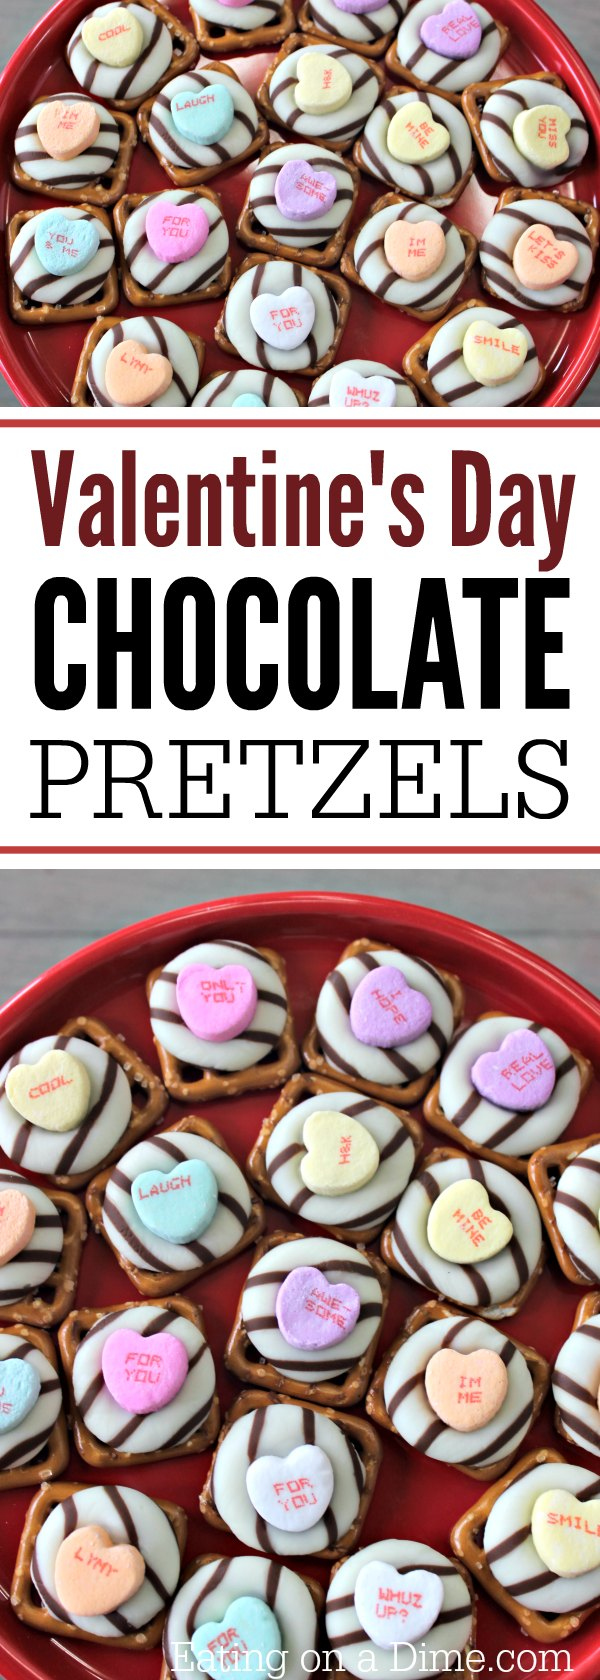 Valentine's Day White Chocolate Pretzels recipe - Pretzel Kisses